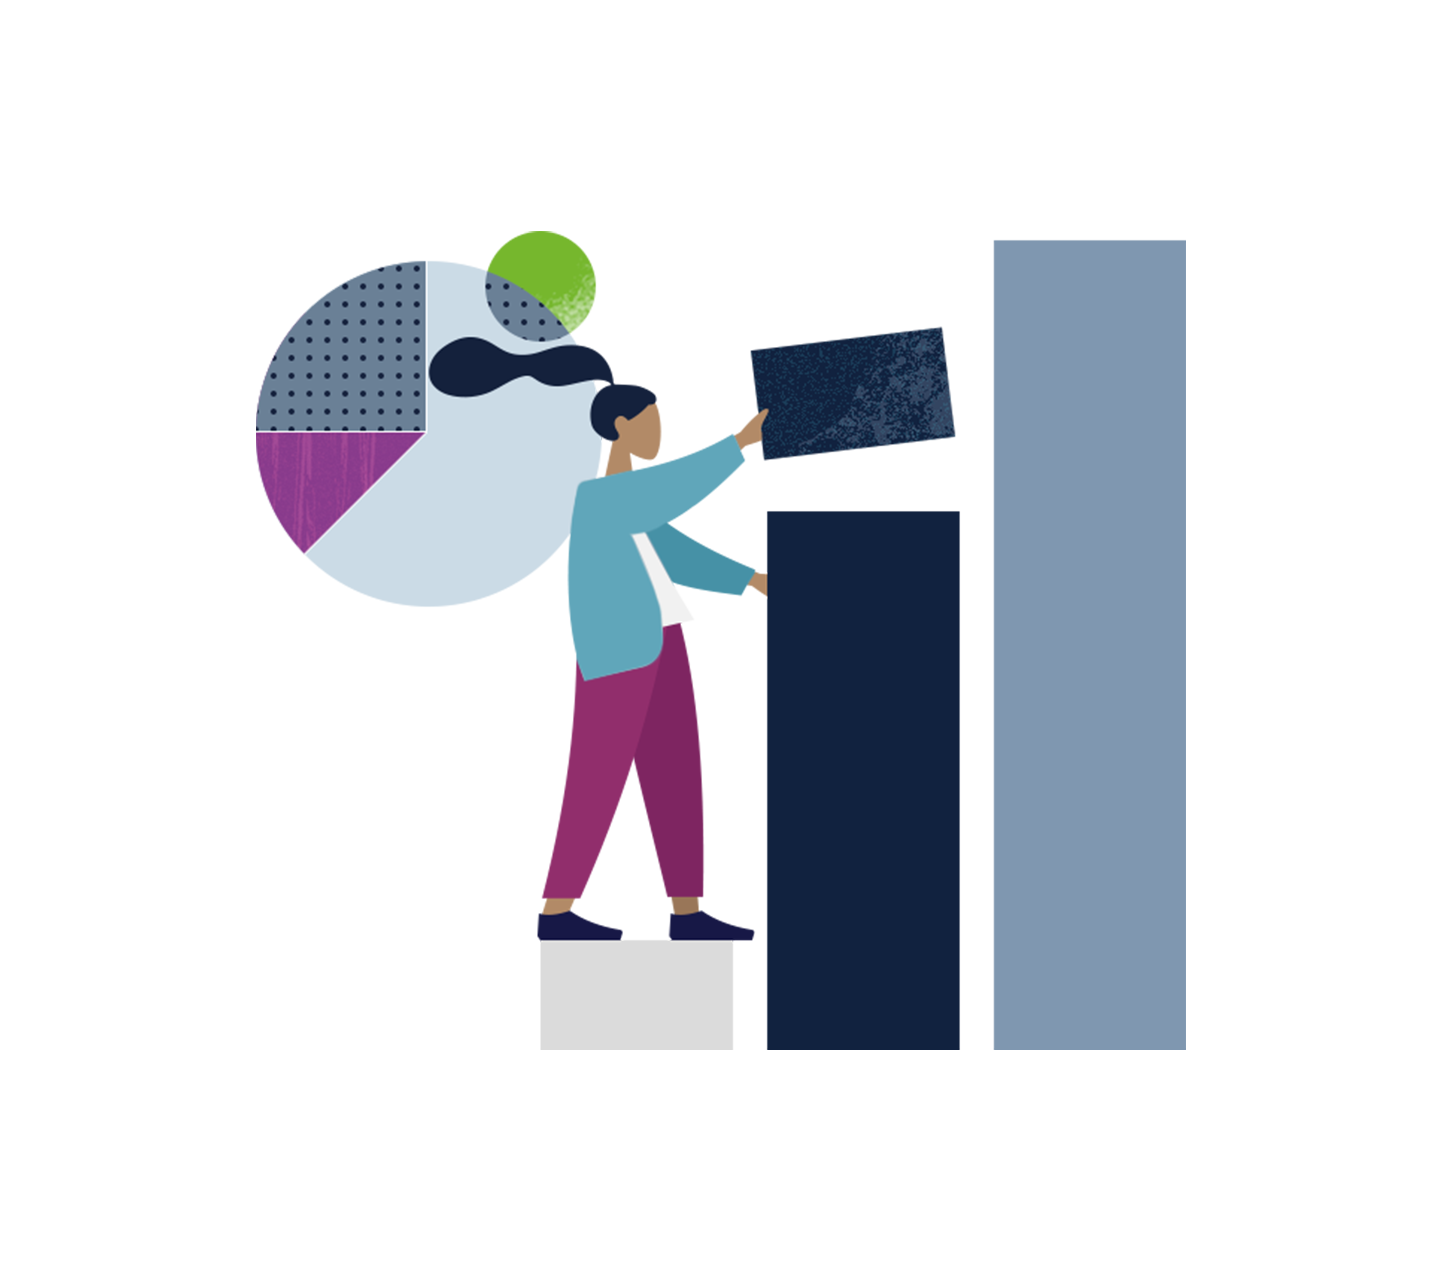 Optimize operations and grow your brand with actionable data. - A fully integrated technology ecosystem unlocks powerful data that can transform operations and create truly personalized customer experiences.